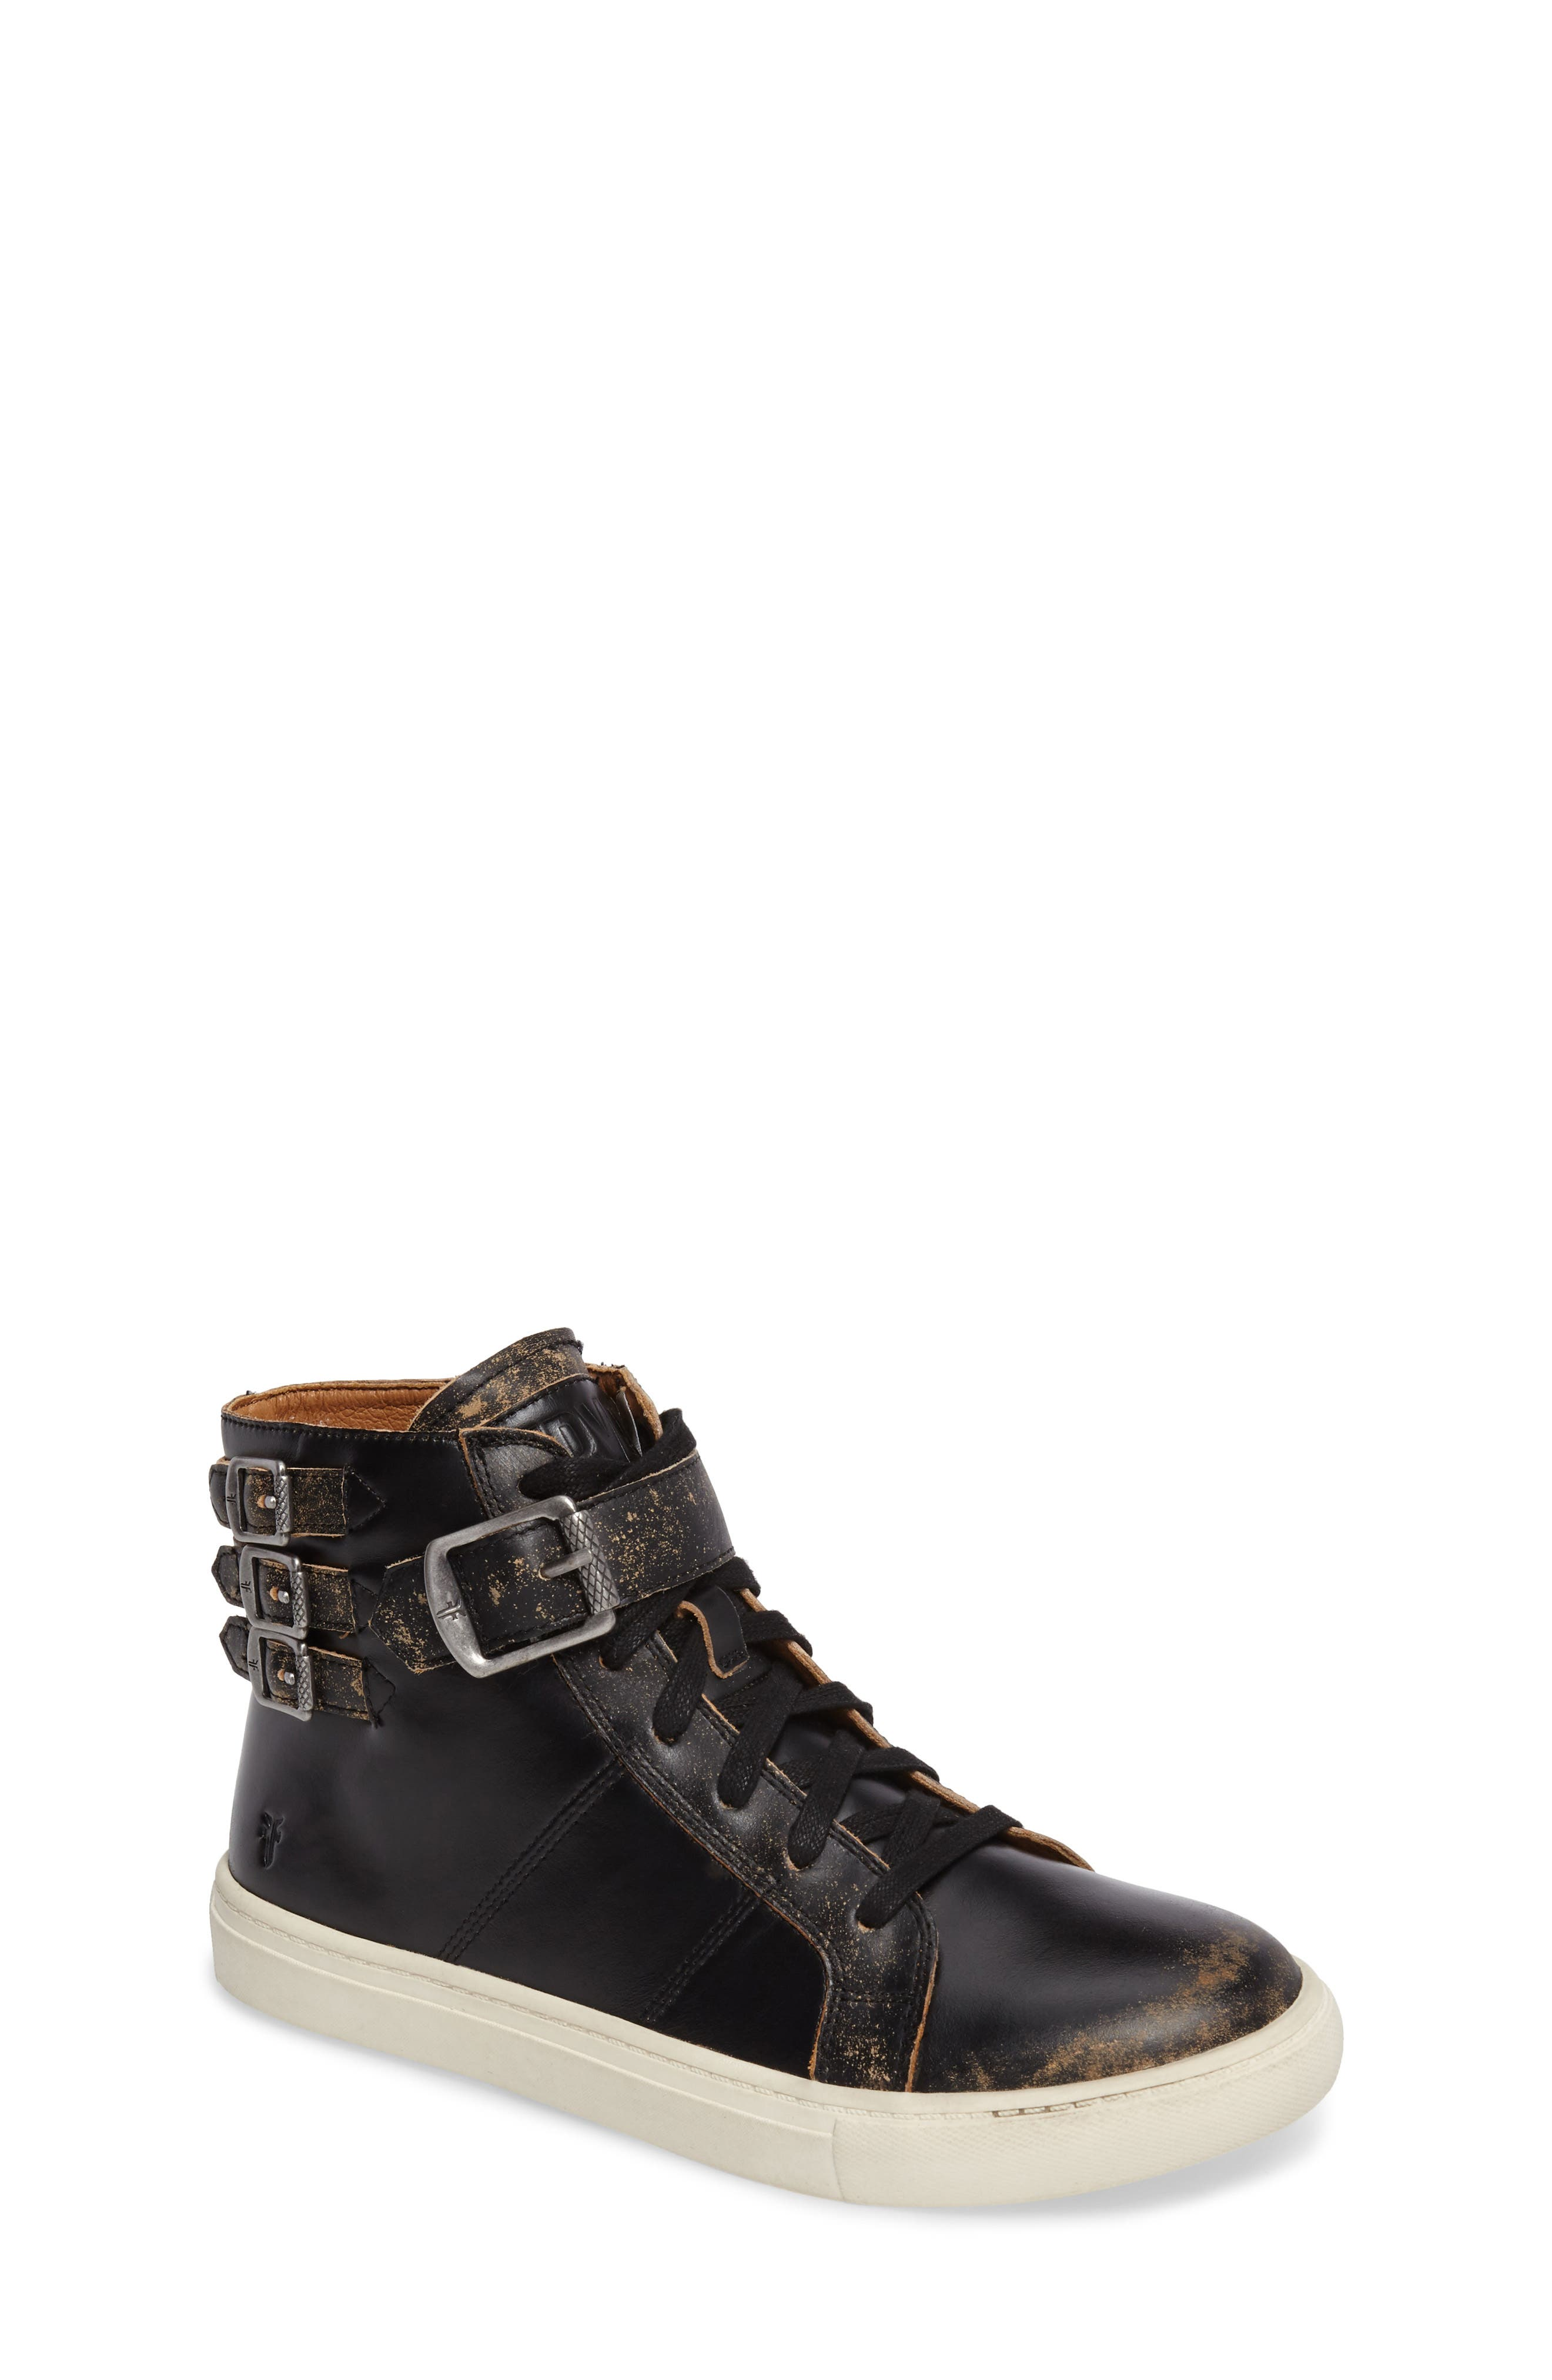 Main Image - Frye Dylan Buckle Strap High-Top Sneaker (Toddler, Little Kid & Big Kid)